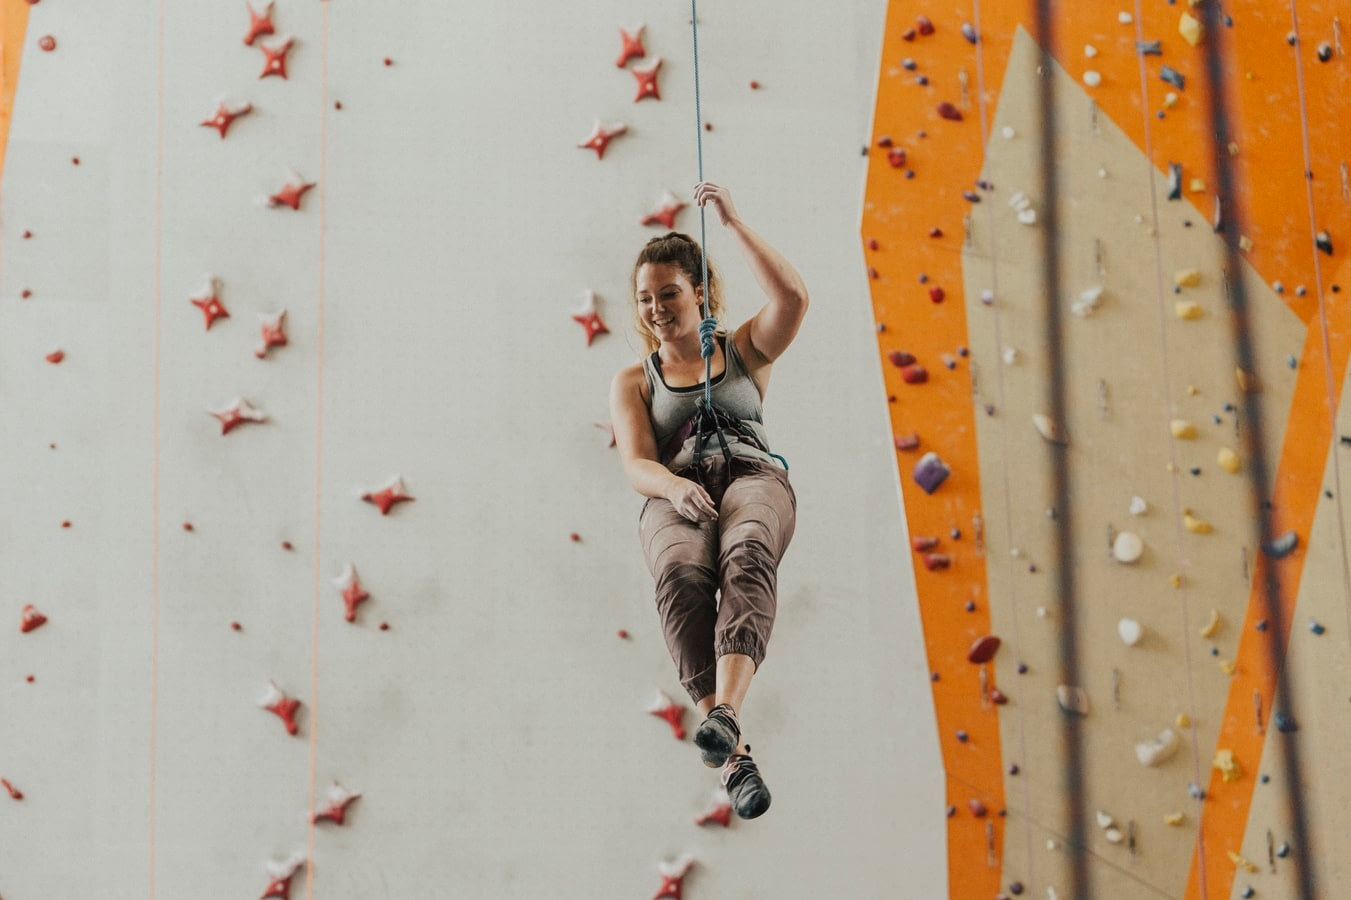 woman rappelling down a rope during indoor rock climbing